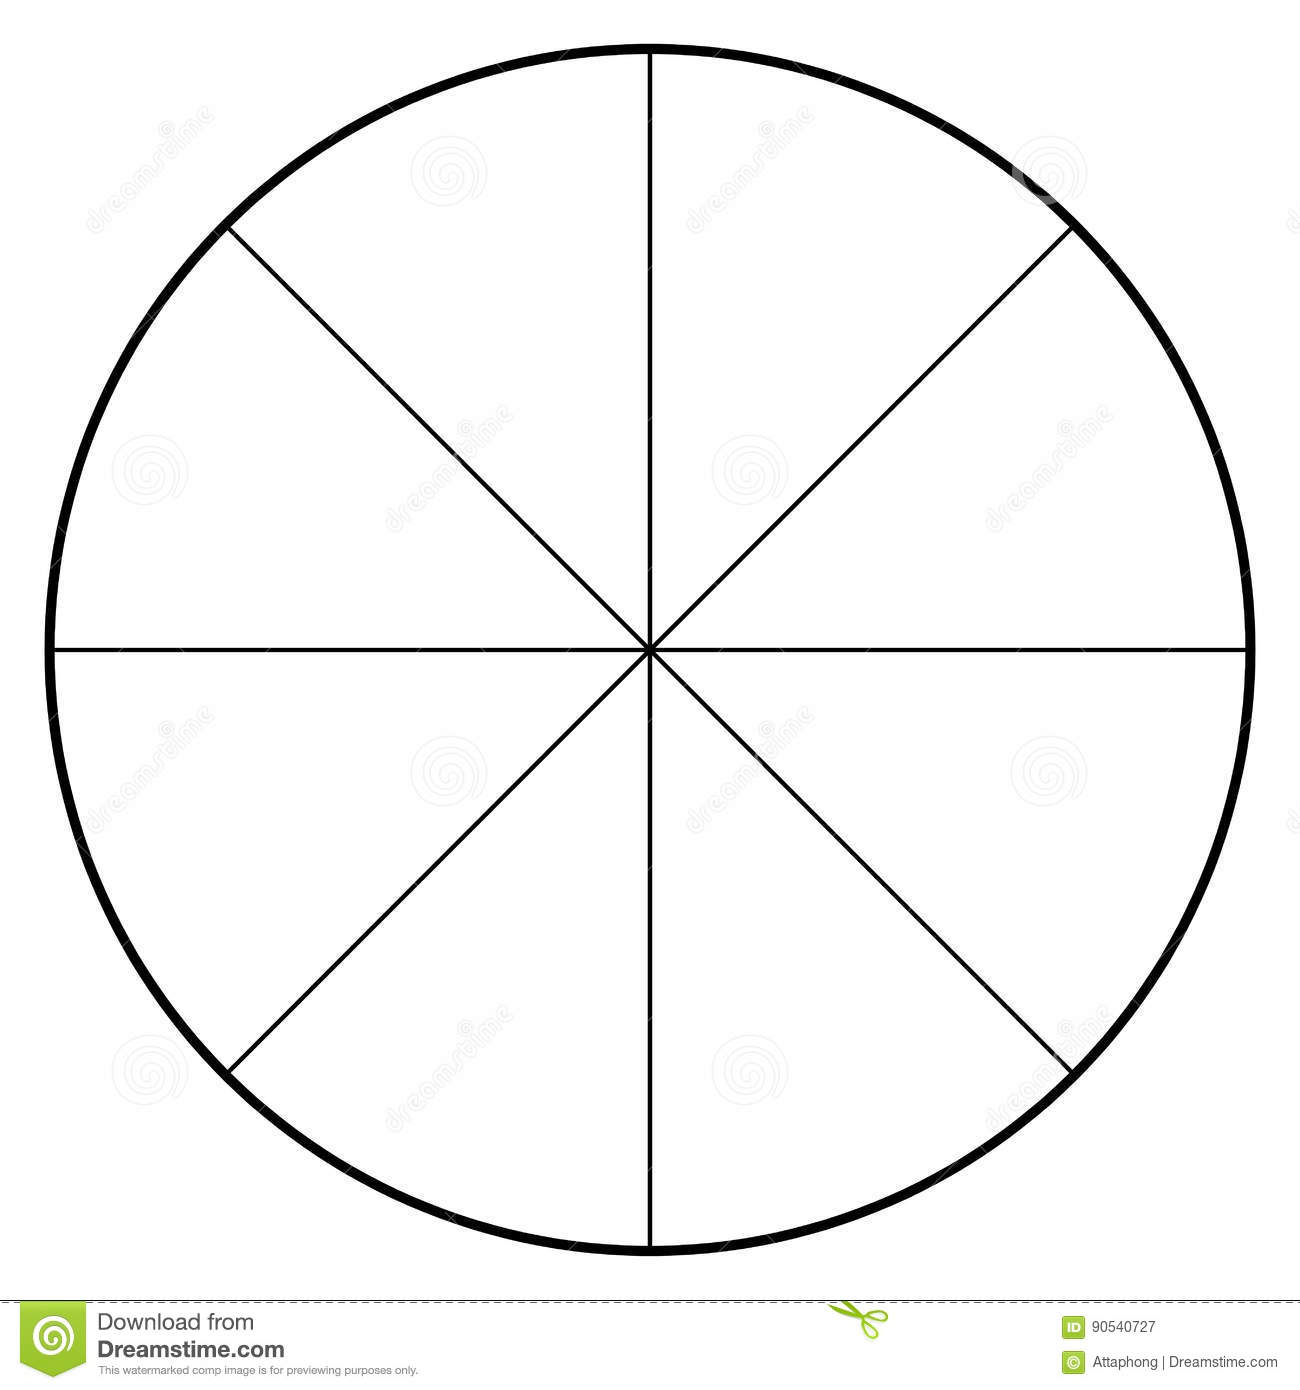 empty pie chart - gagnatashort.co